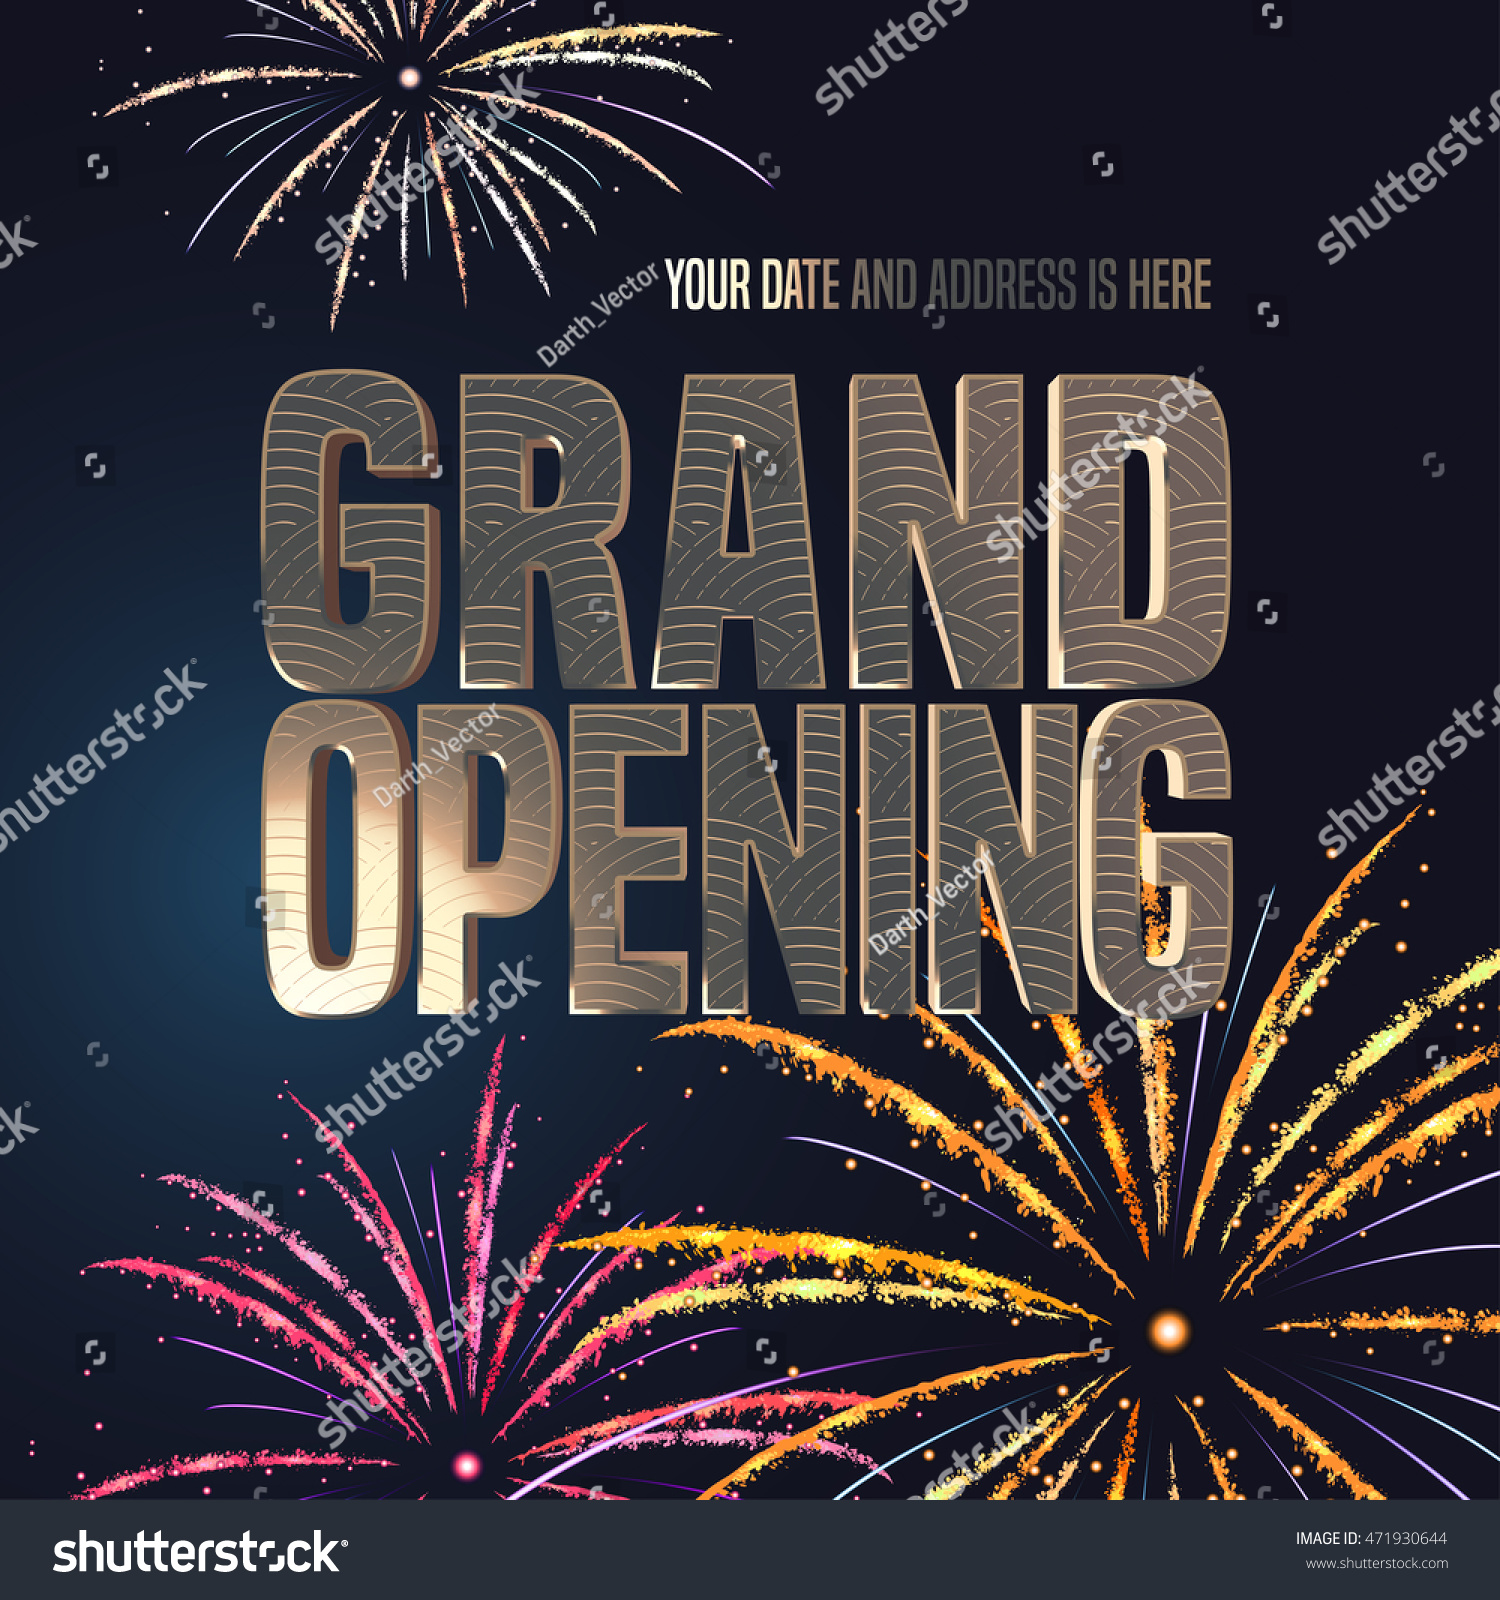 Grand Opening Vector Banner Illustration Template Stock Vector HD ...